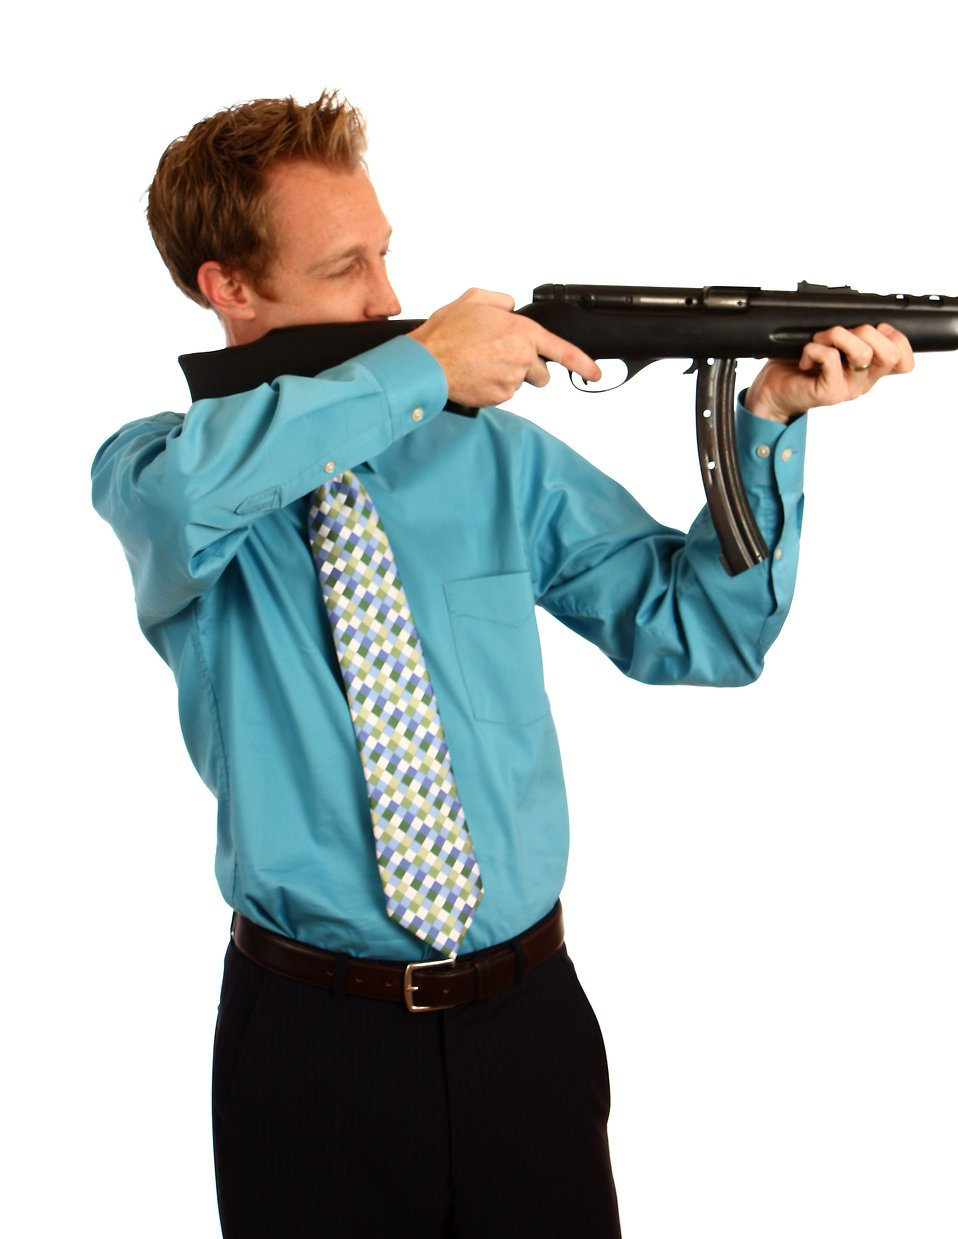 A young businessman holding a rifle : Free Stock Photo